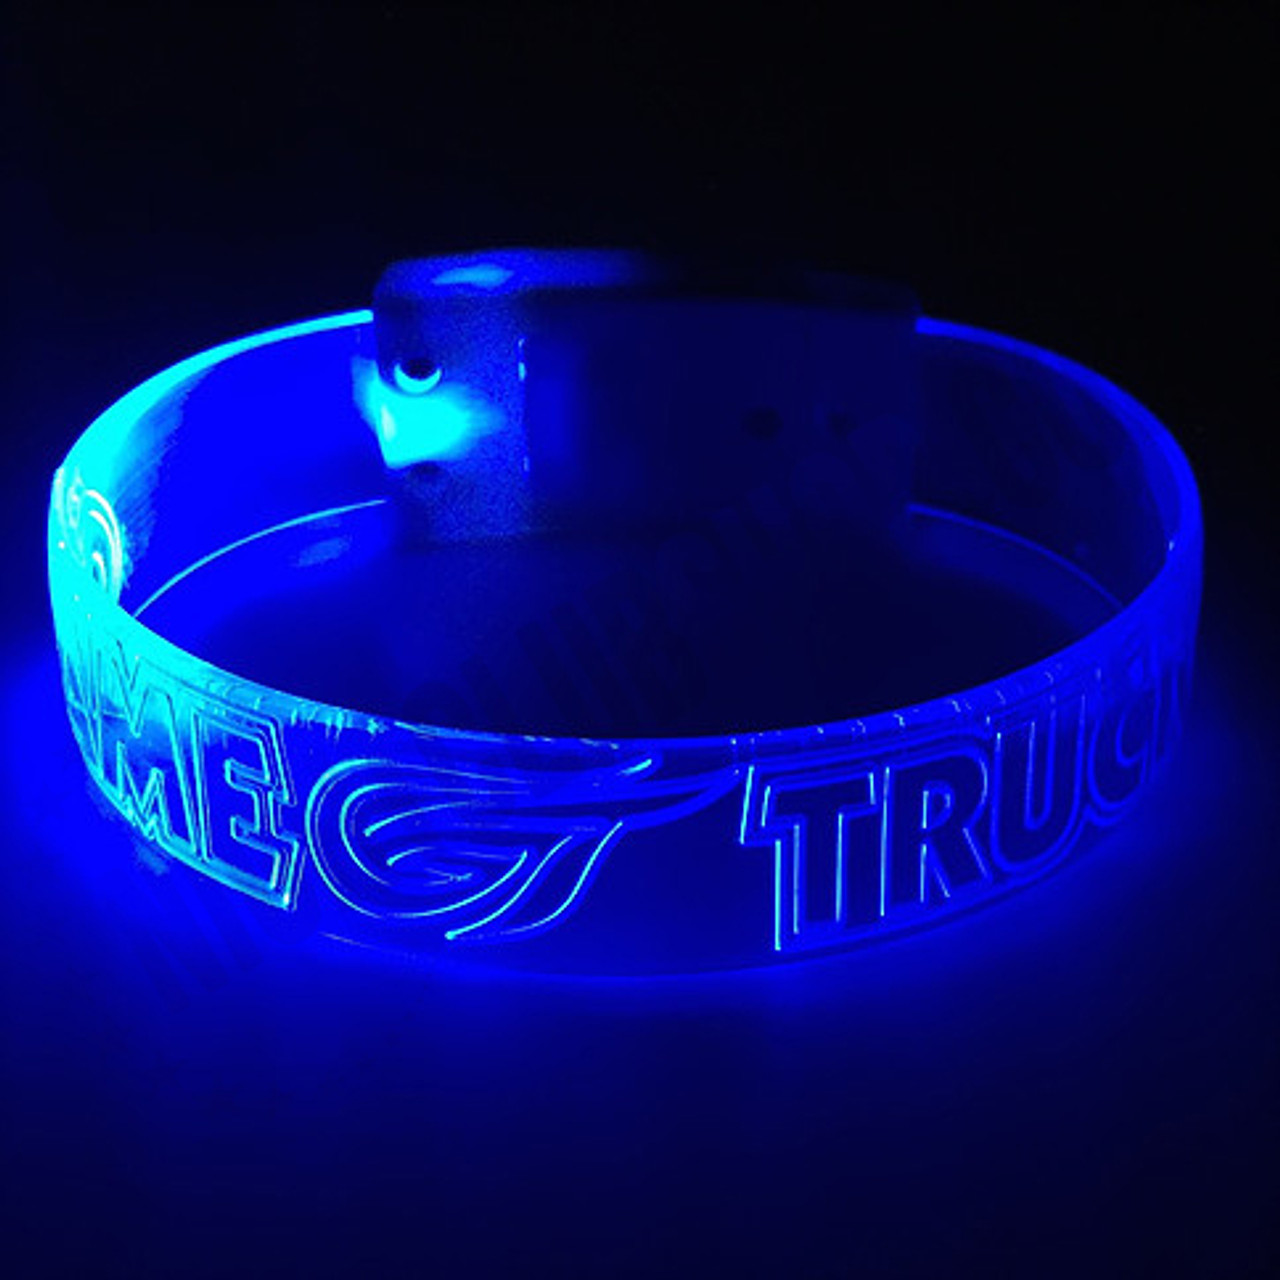 LED, wristband, wholesale, pricing, bulk, LED Bands, Band, personalized, custom, brandingLED, bride, groom, Light up, Light, Iluminated, Glow, Wristband, wrist Band